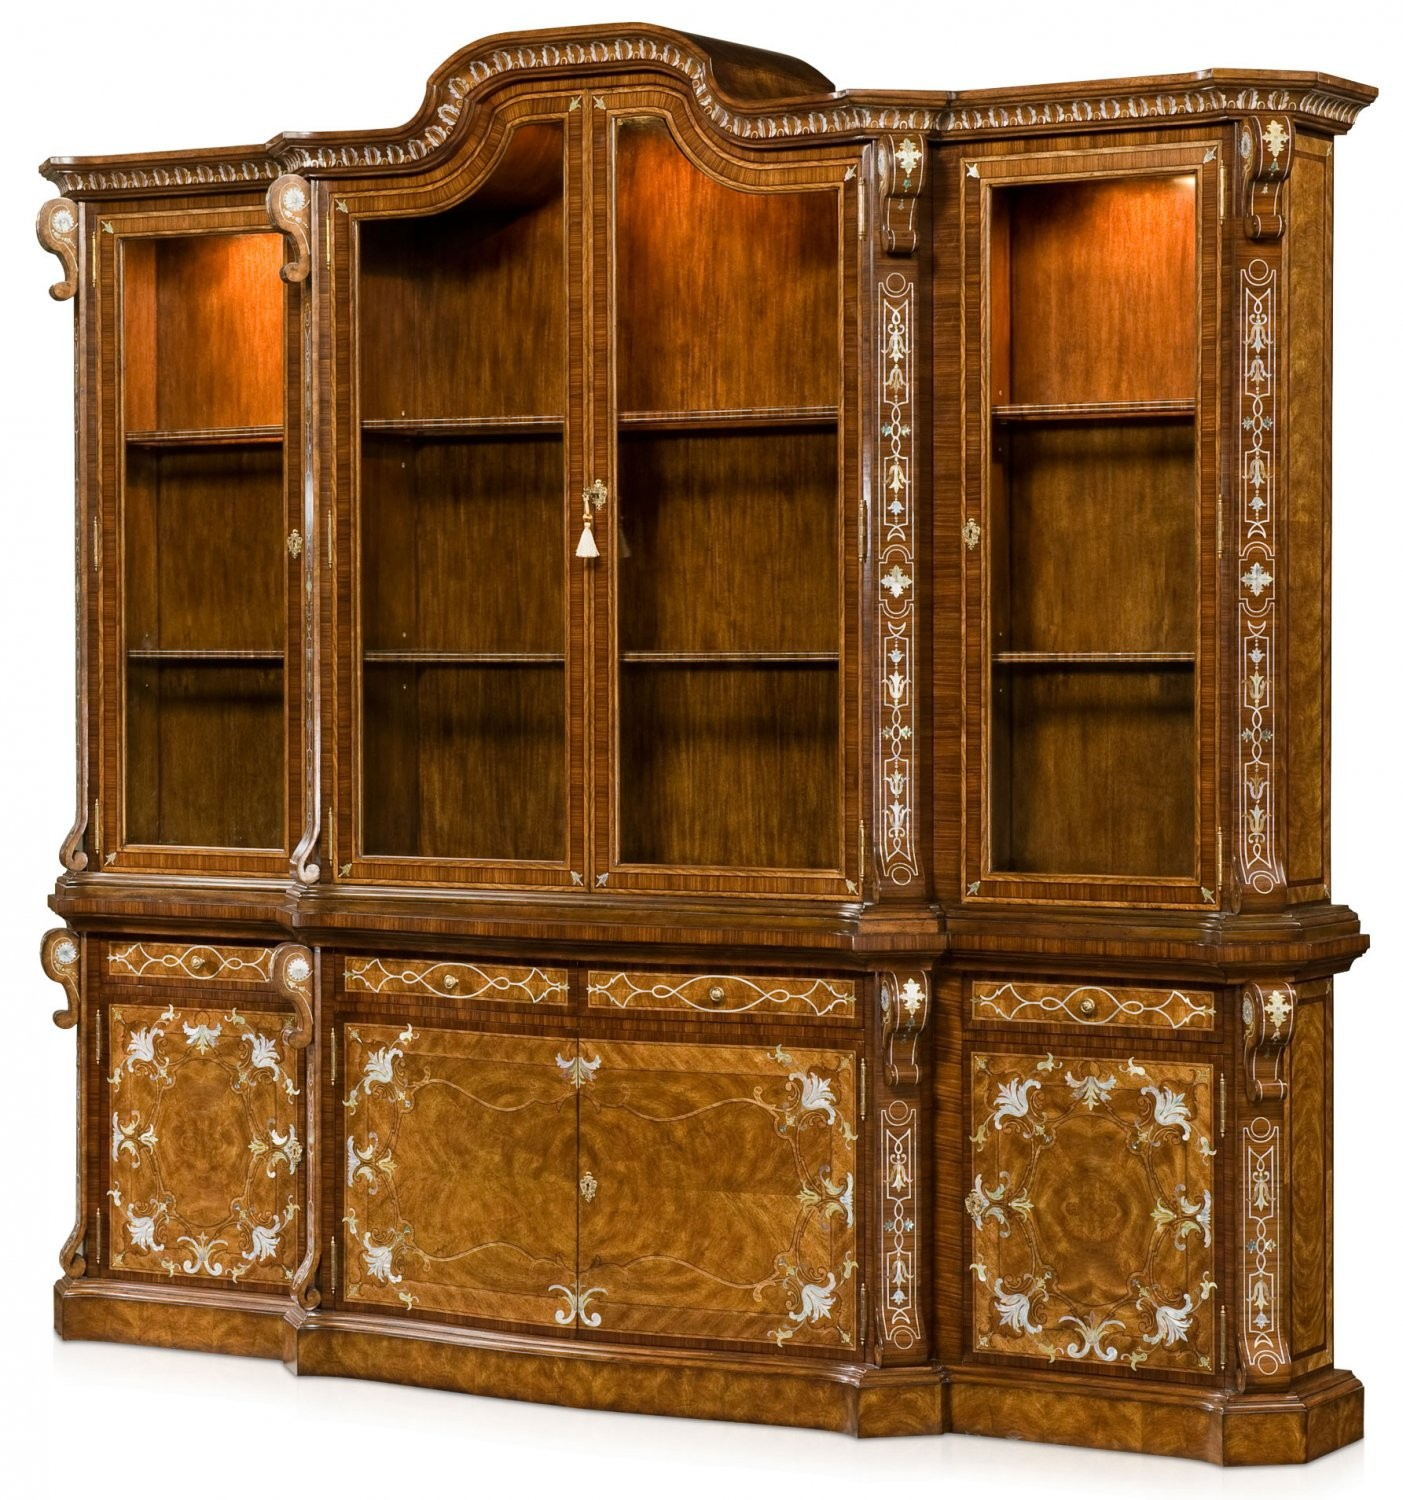 An exceptional cerejeira veneered bookcase